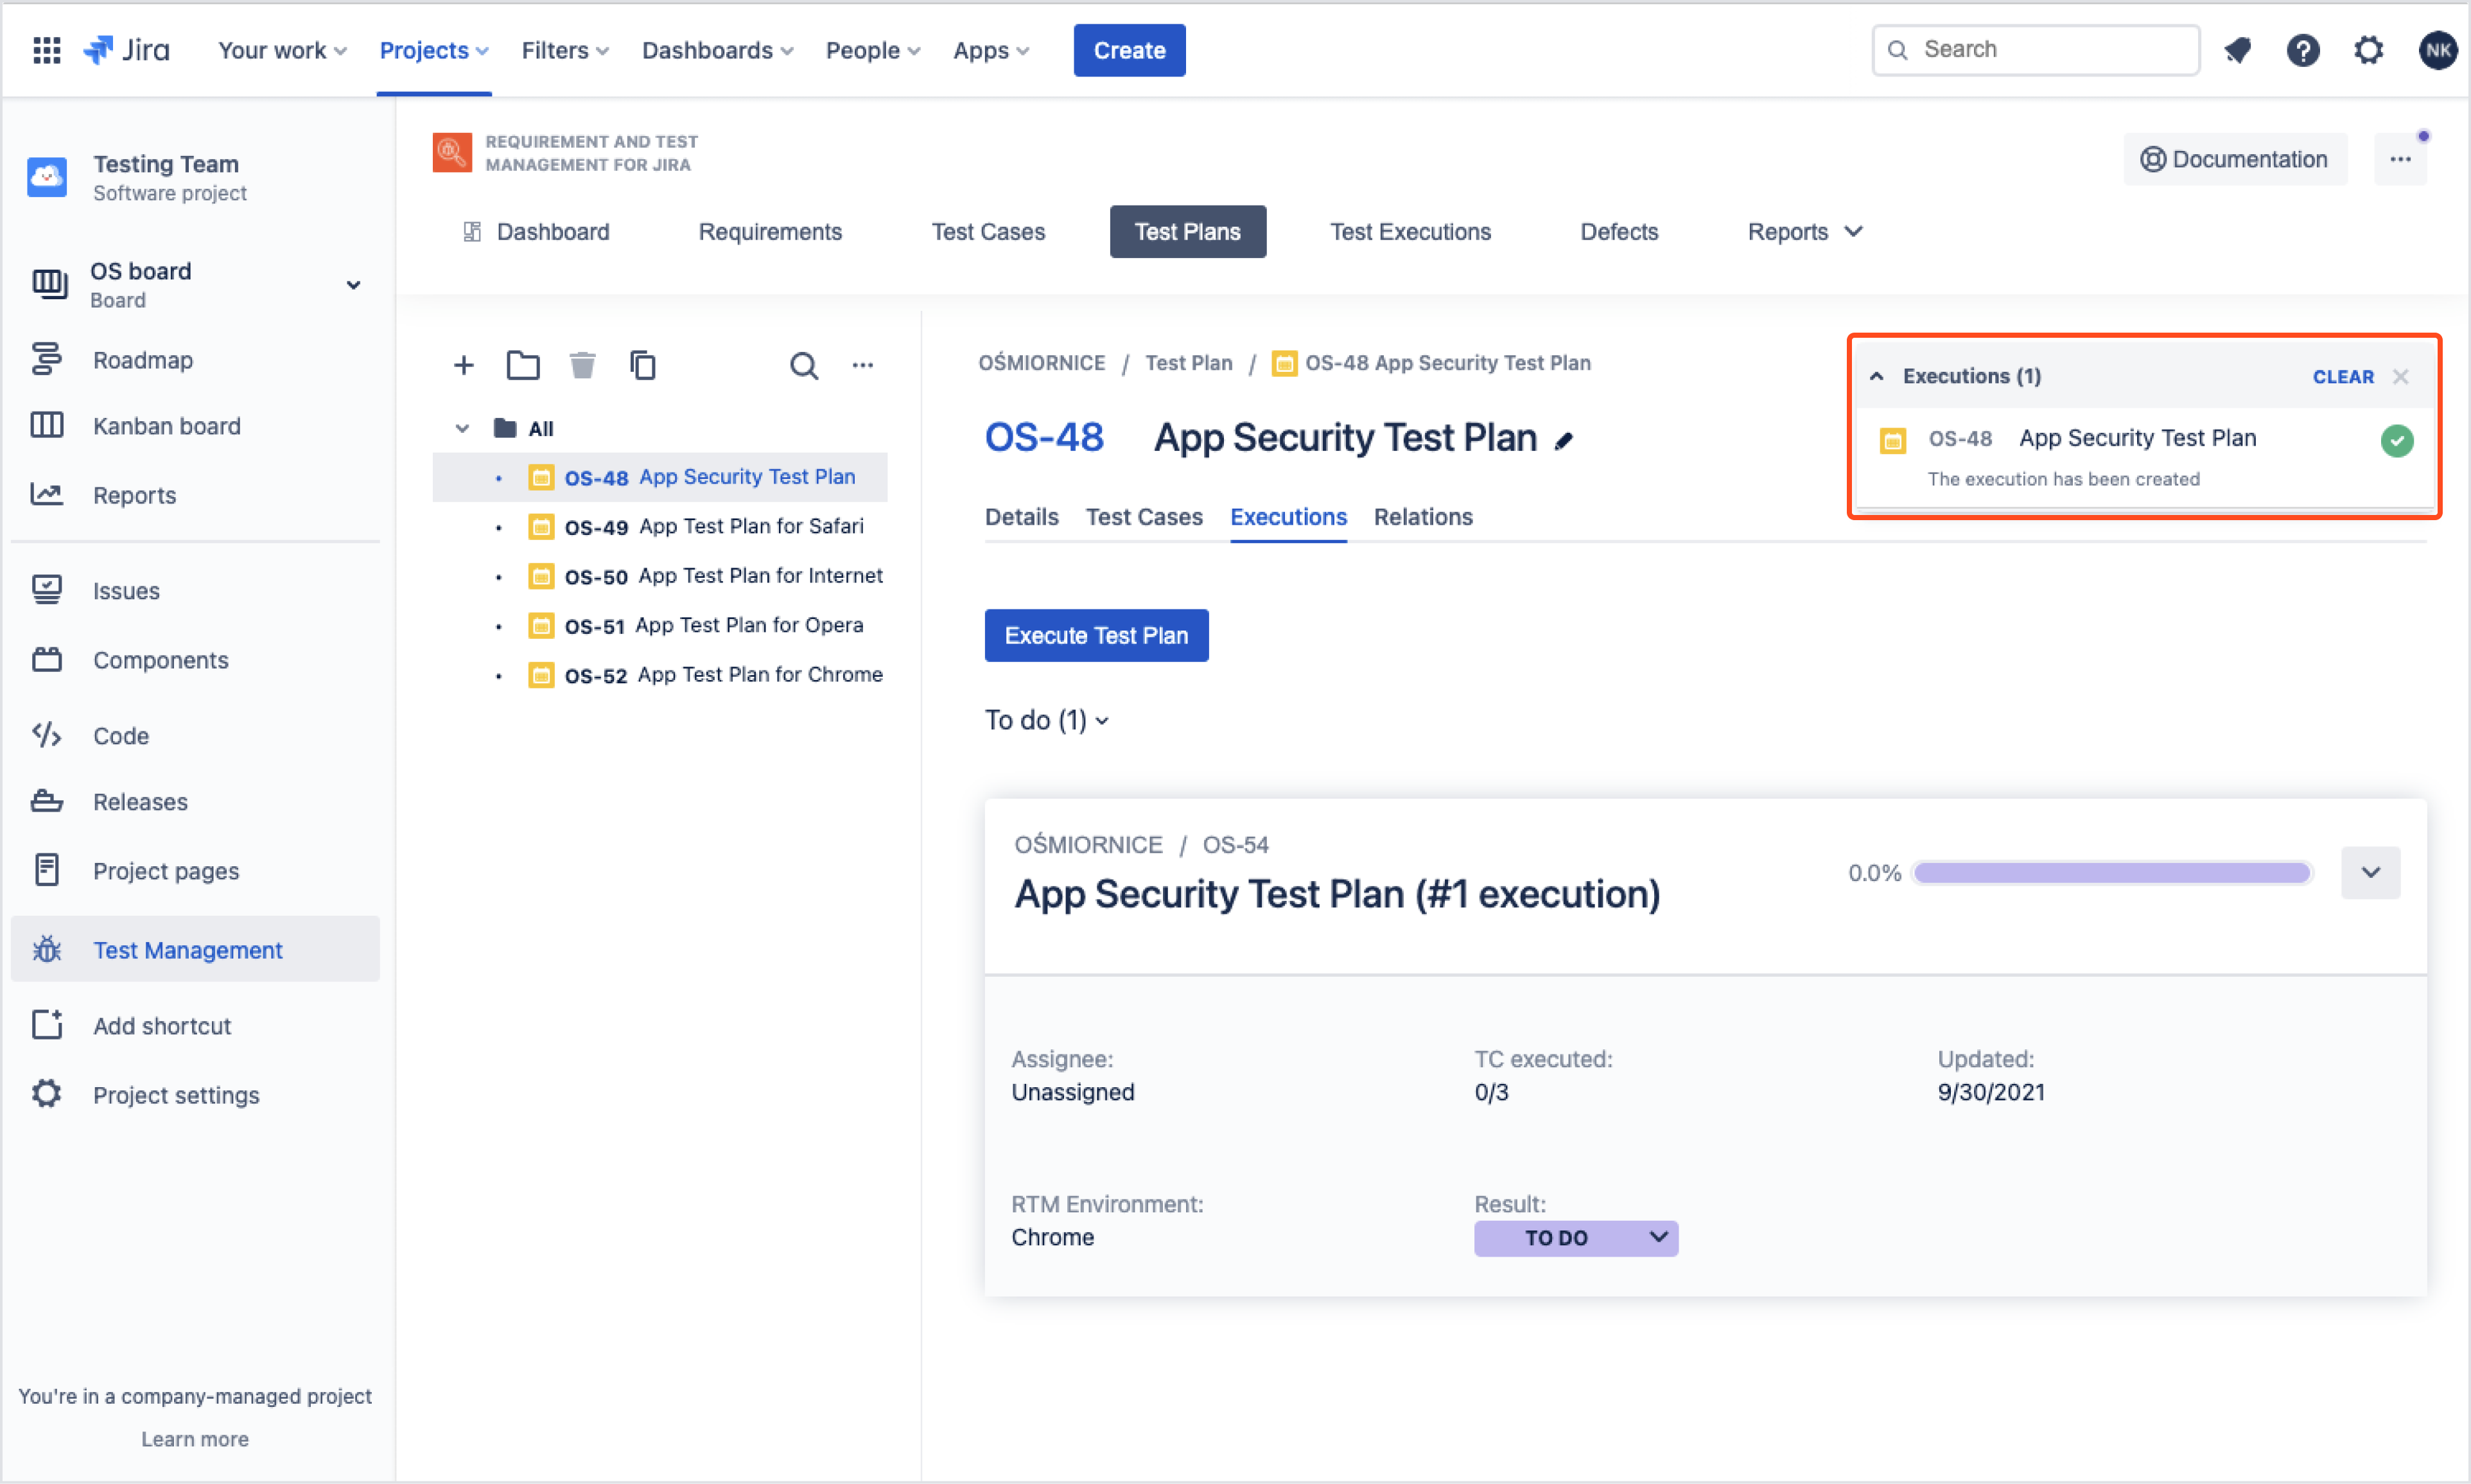 Start executing Test Cases with Requirements and Test Management for Jira app